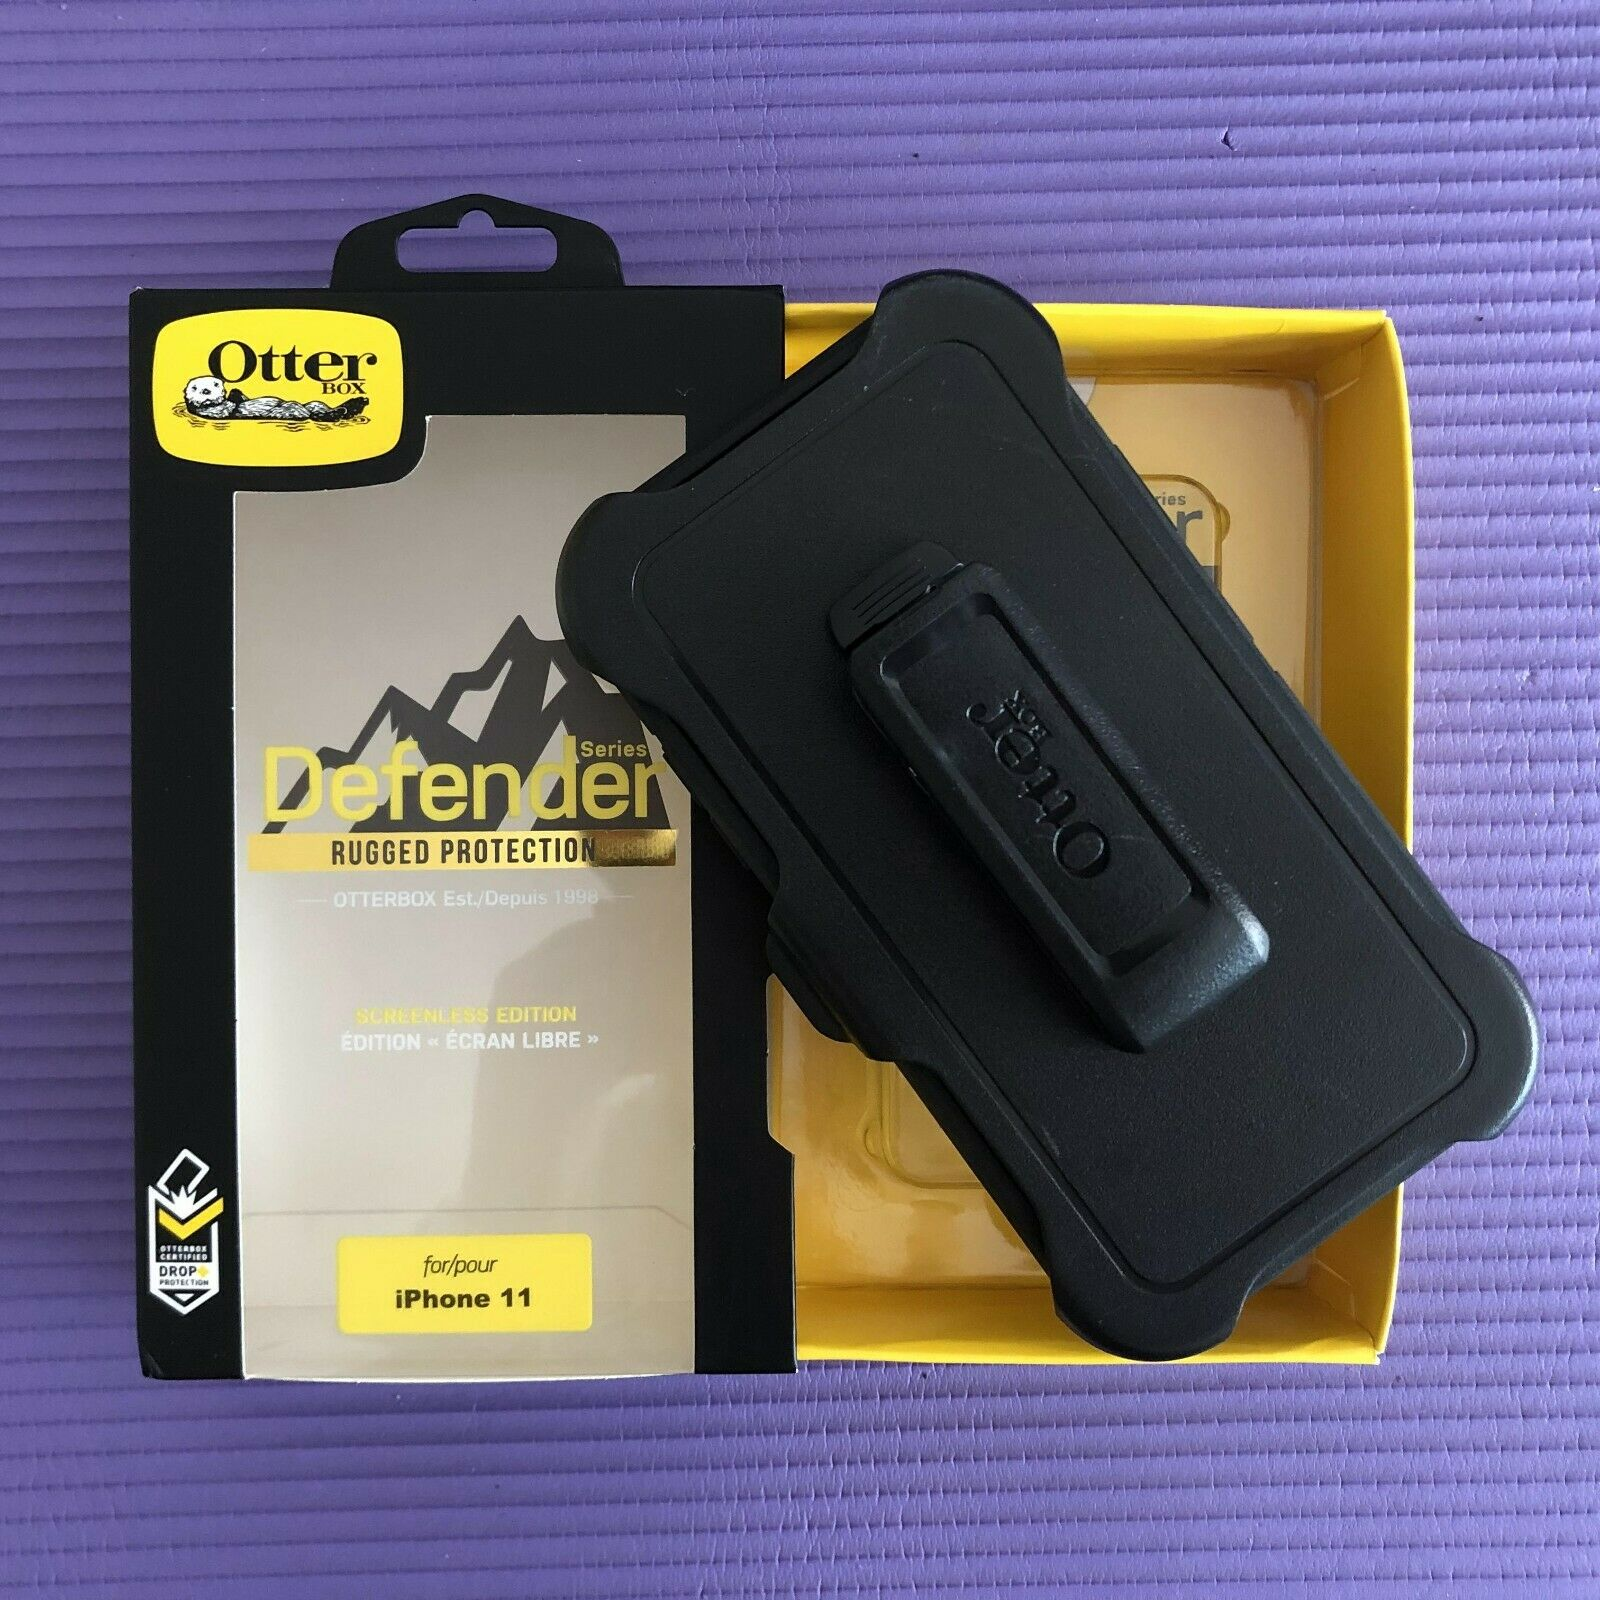 Otterbox Case Clip Cover for Apple iPhone 11 Black New